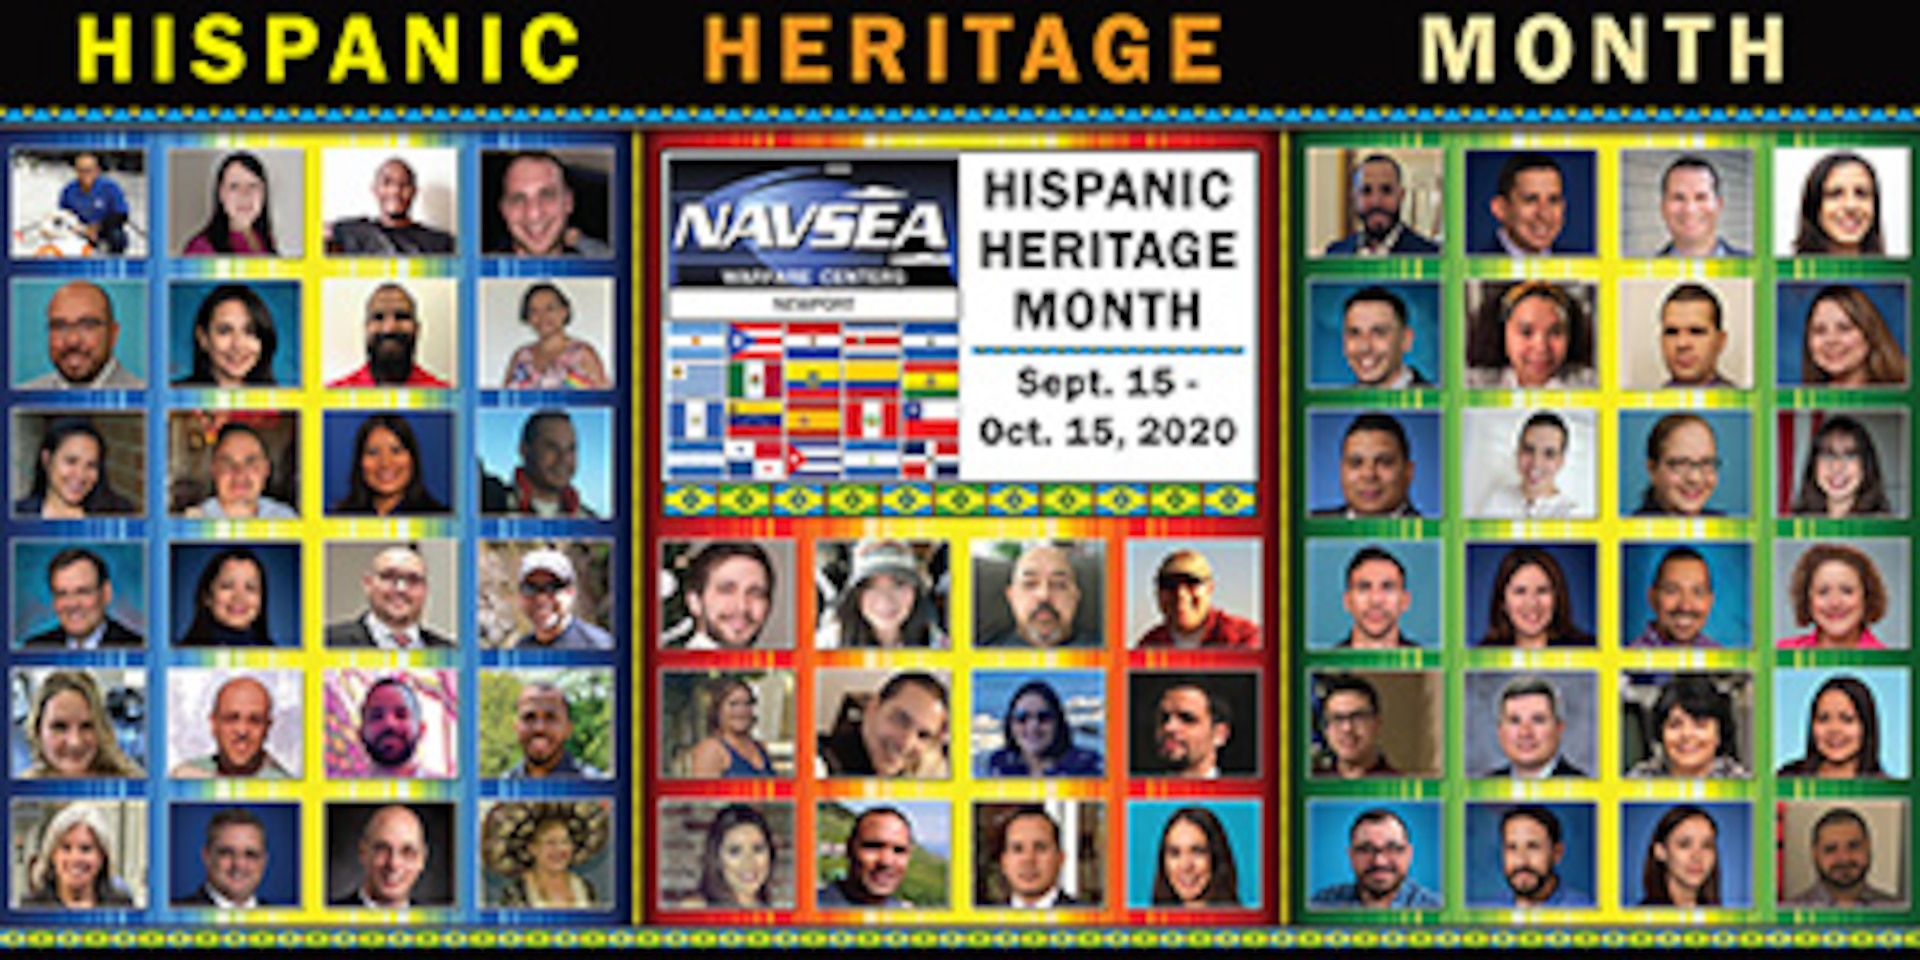 NUWC Division Newport celebrates Hispanic Heritage Month with video, online events